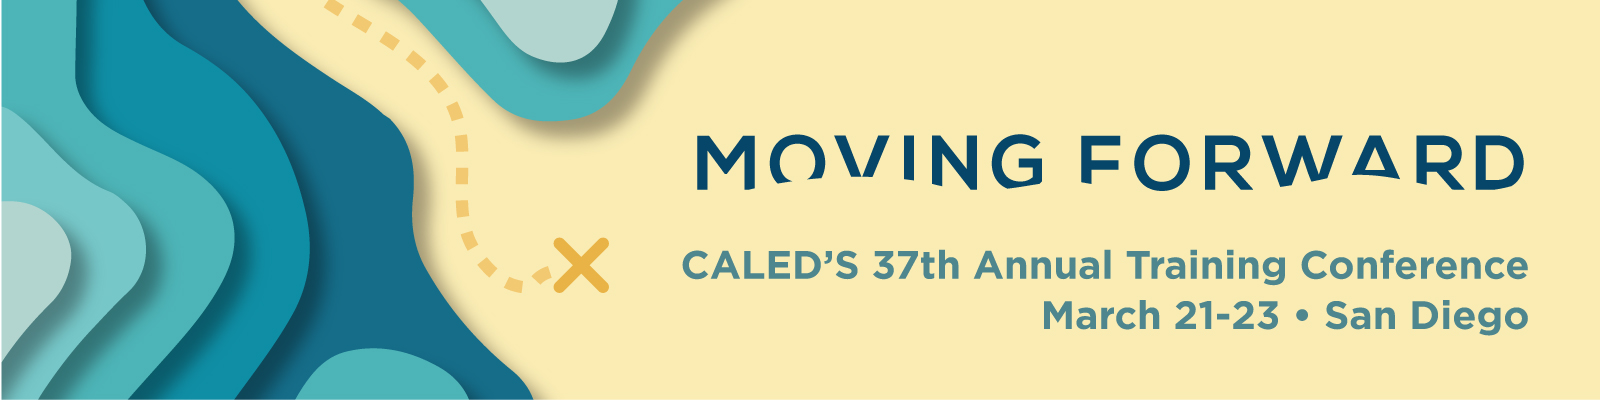 CALED 2017 Conference Agenda CALED